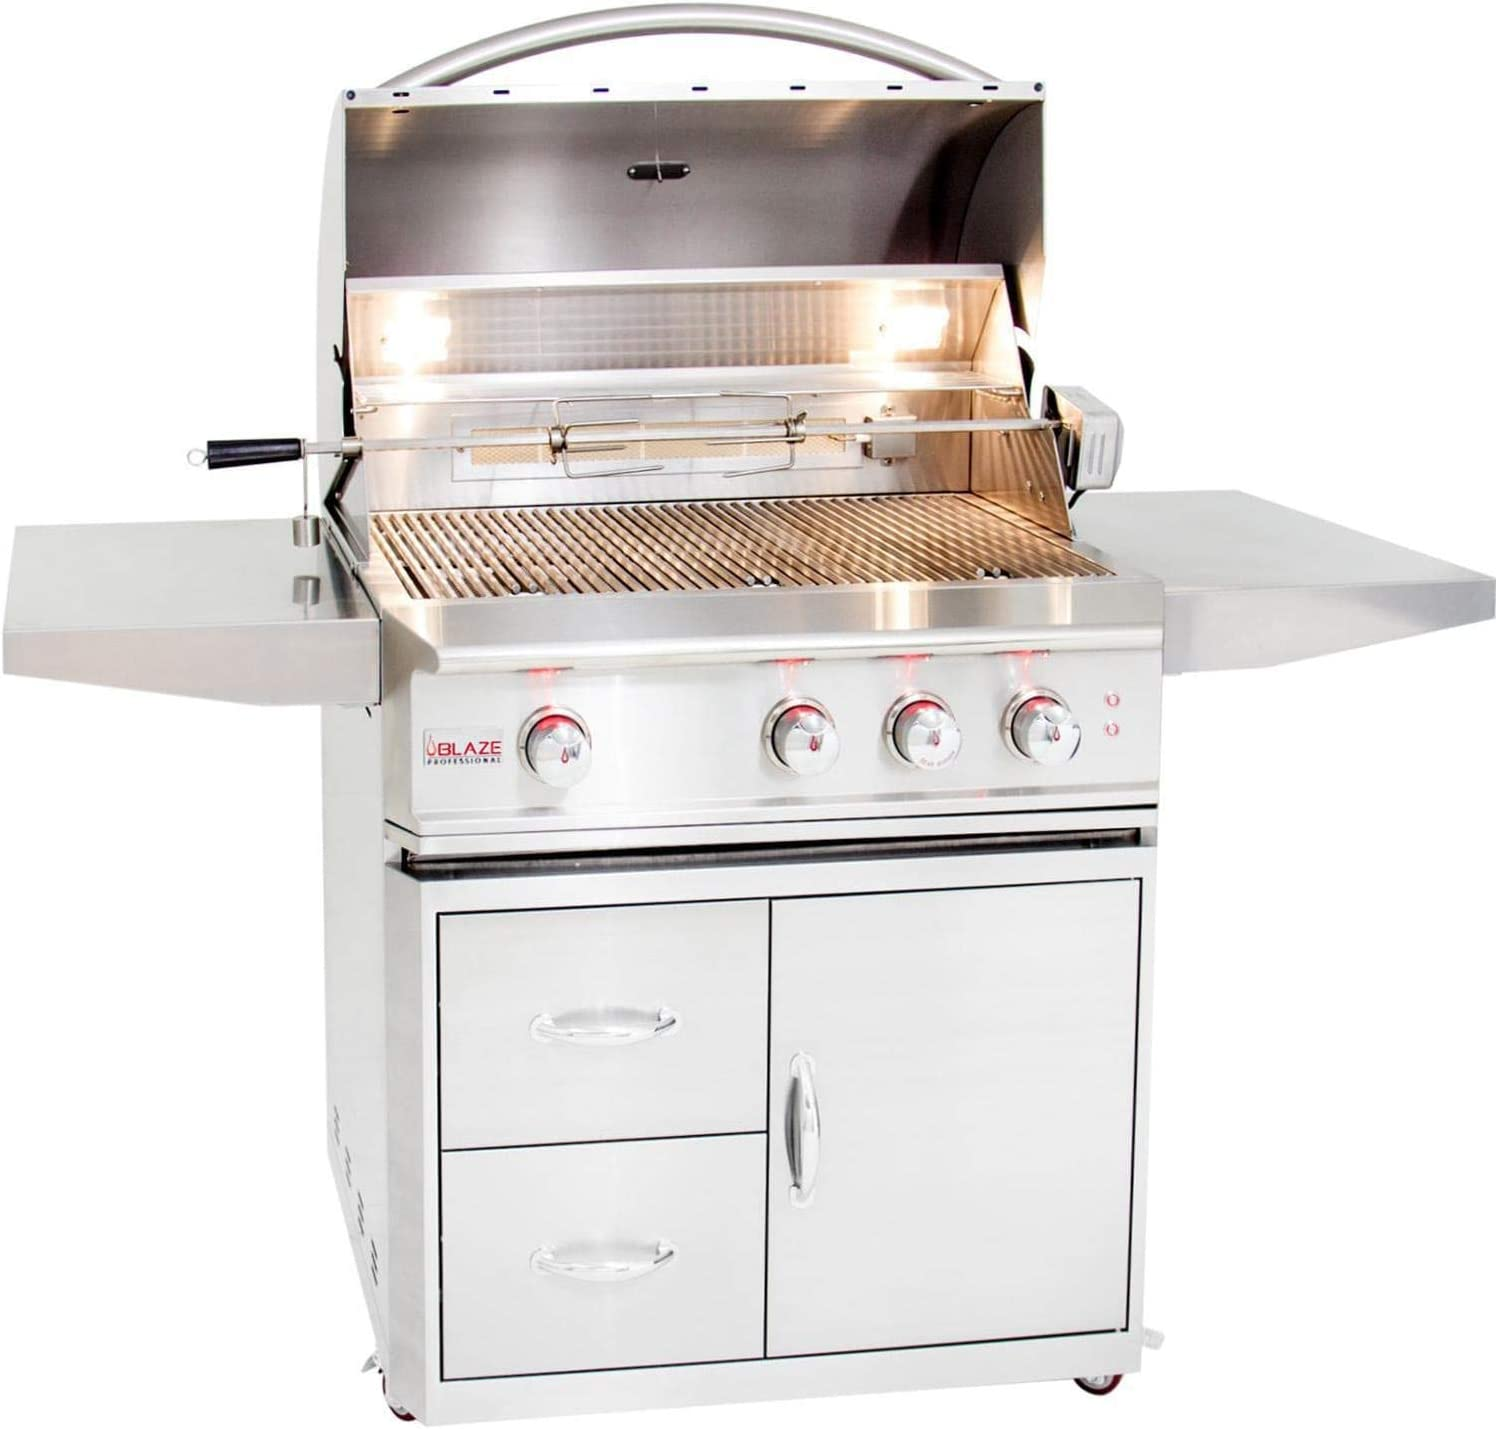 Blaze professional gas grill for outdoor